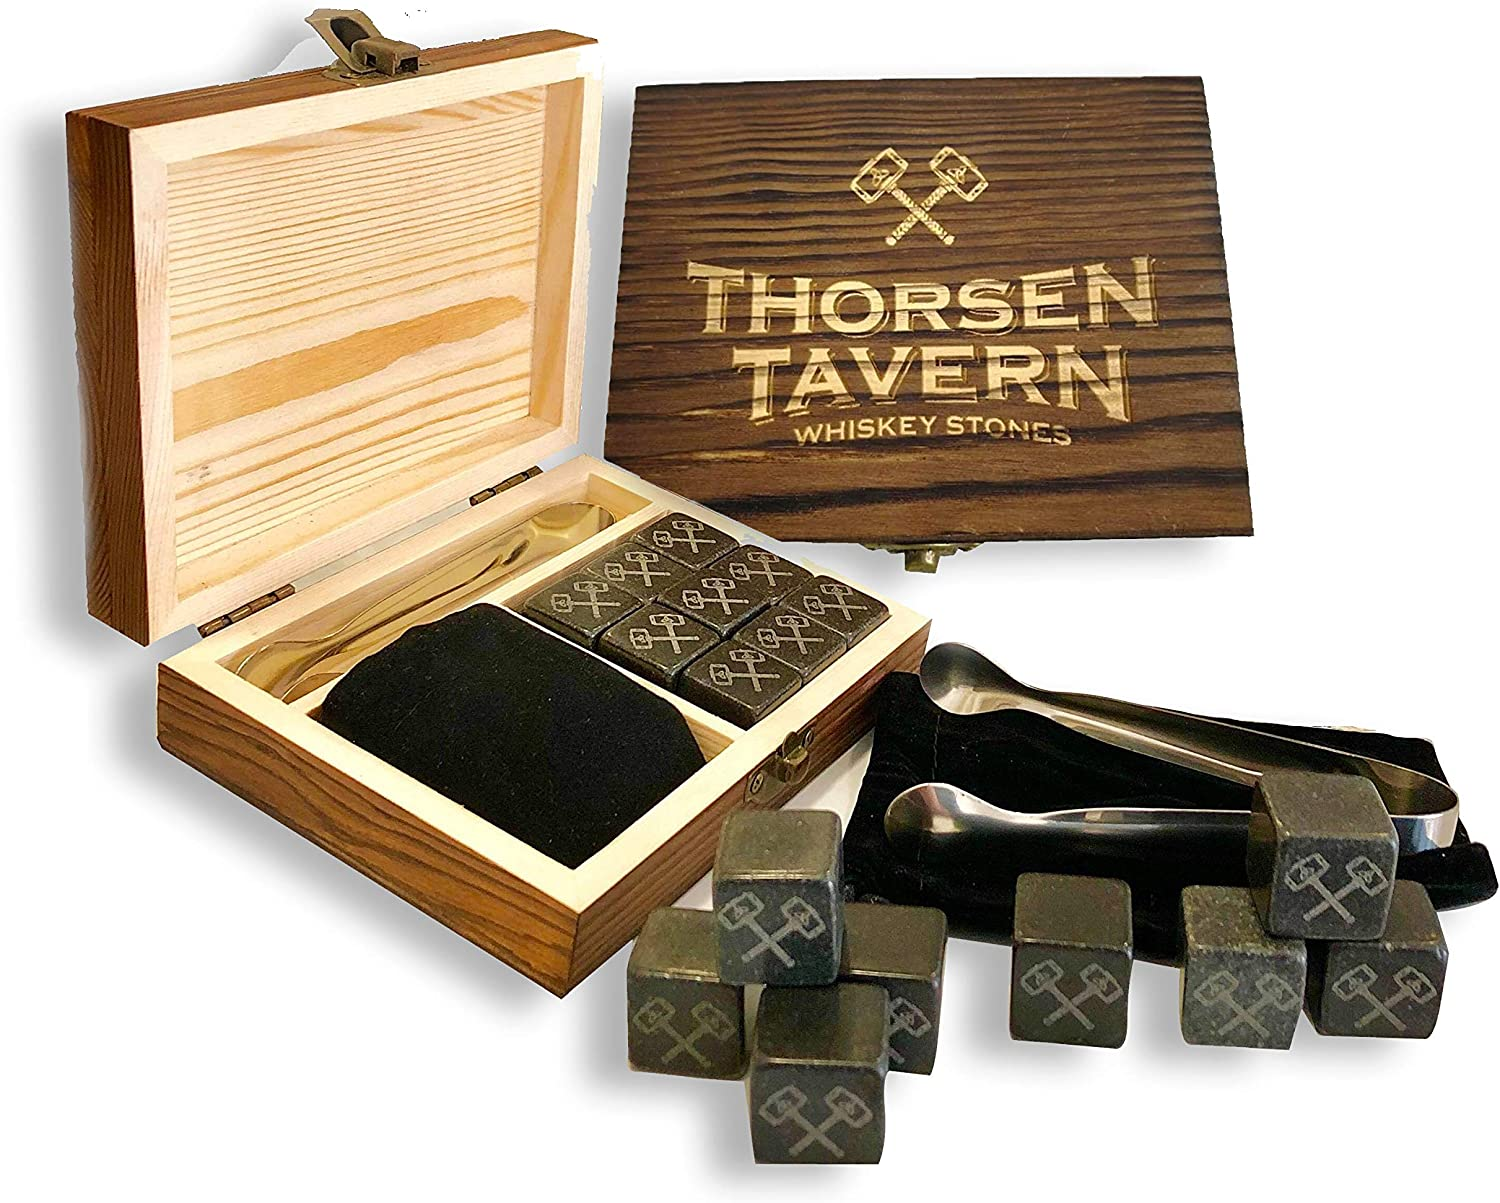 Whiskey Stones Set by Thorsen Tavern - 9 Granite Whiskey Chilling Stones, 1 Tongs set